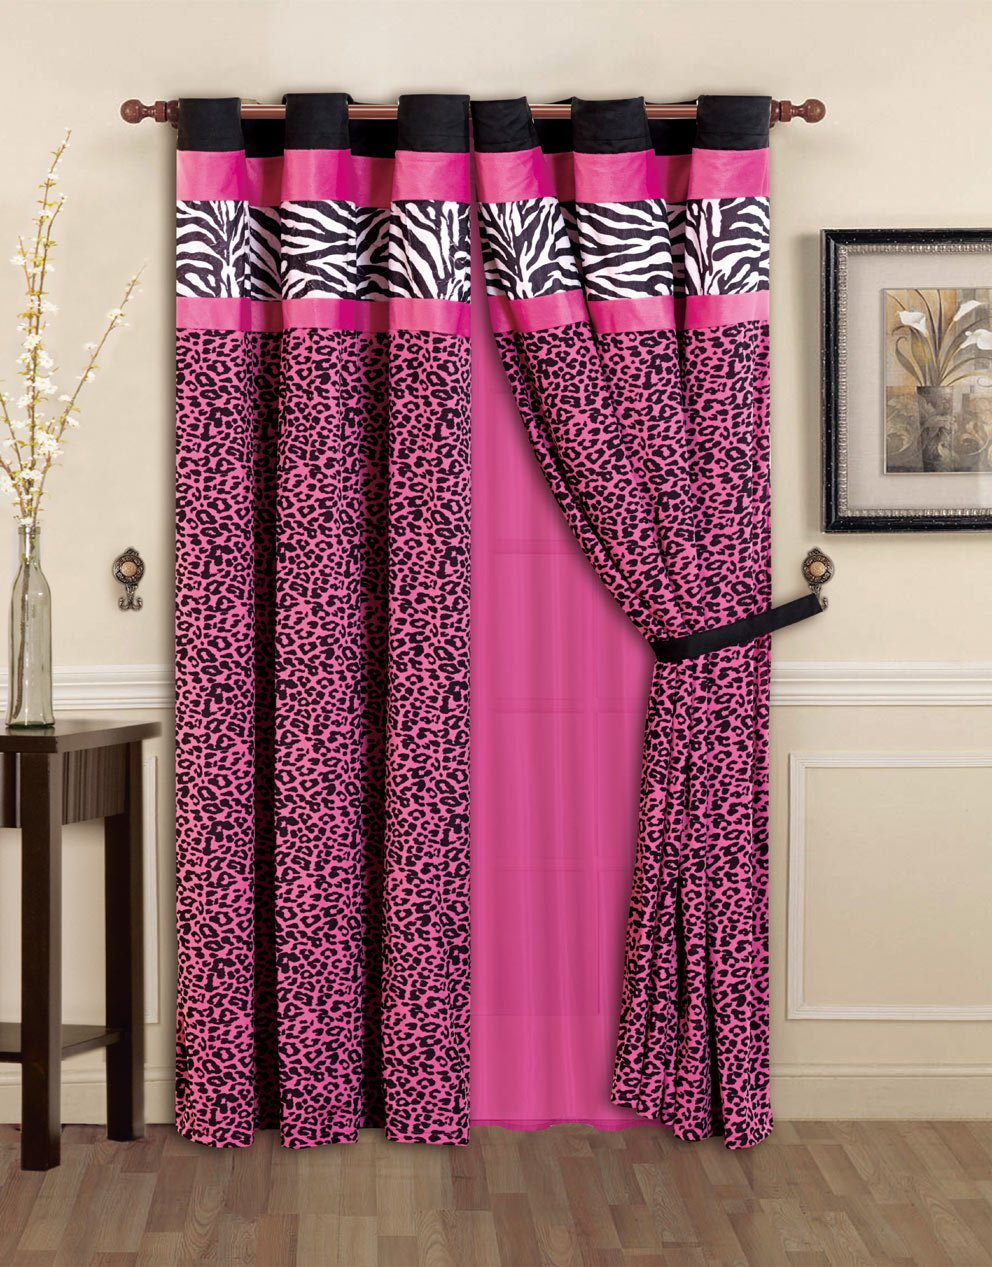 Pink and black bedding - Amazon Com 7 Pieces Hot Pink Black And White Leopard Zebra Comforter 86 X86 Bed In A Bag Set Full Double Size Bedding Home Kitchen